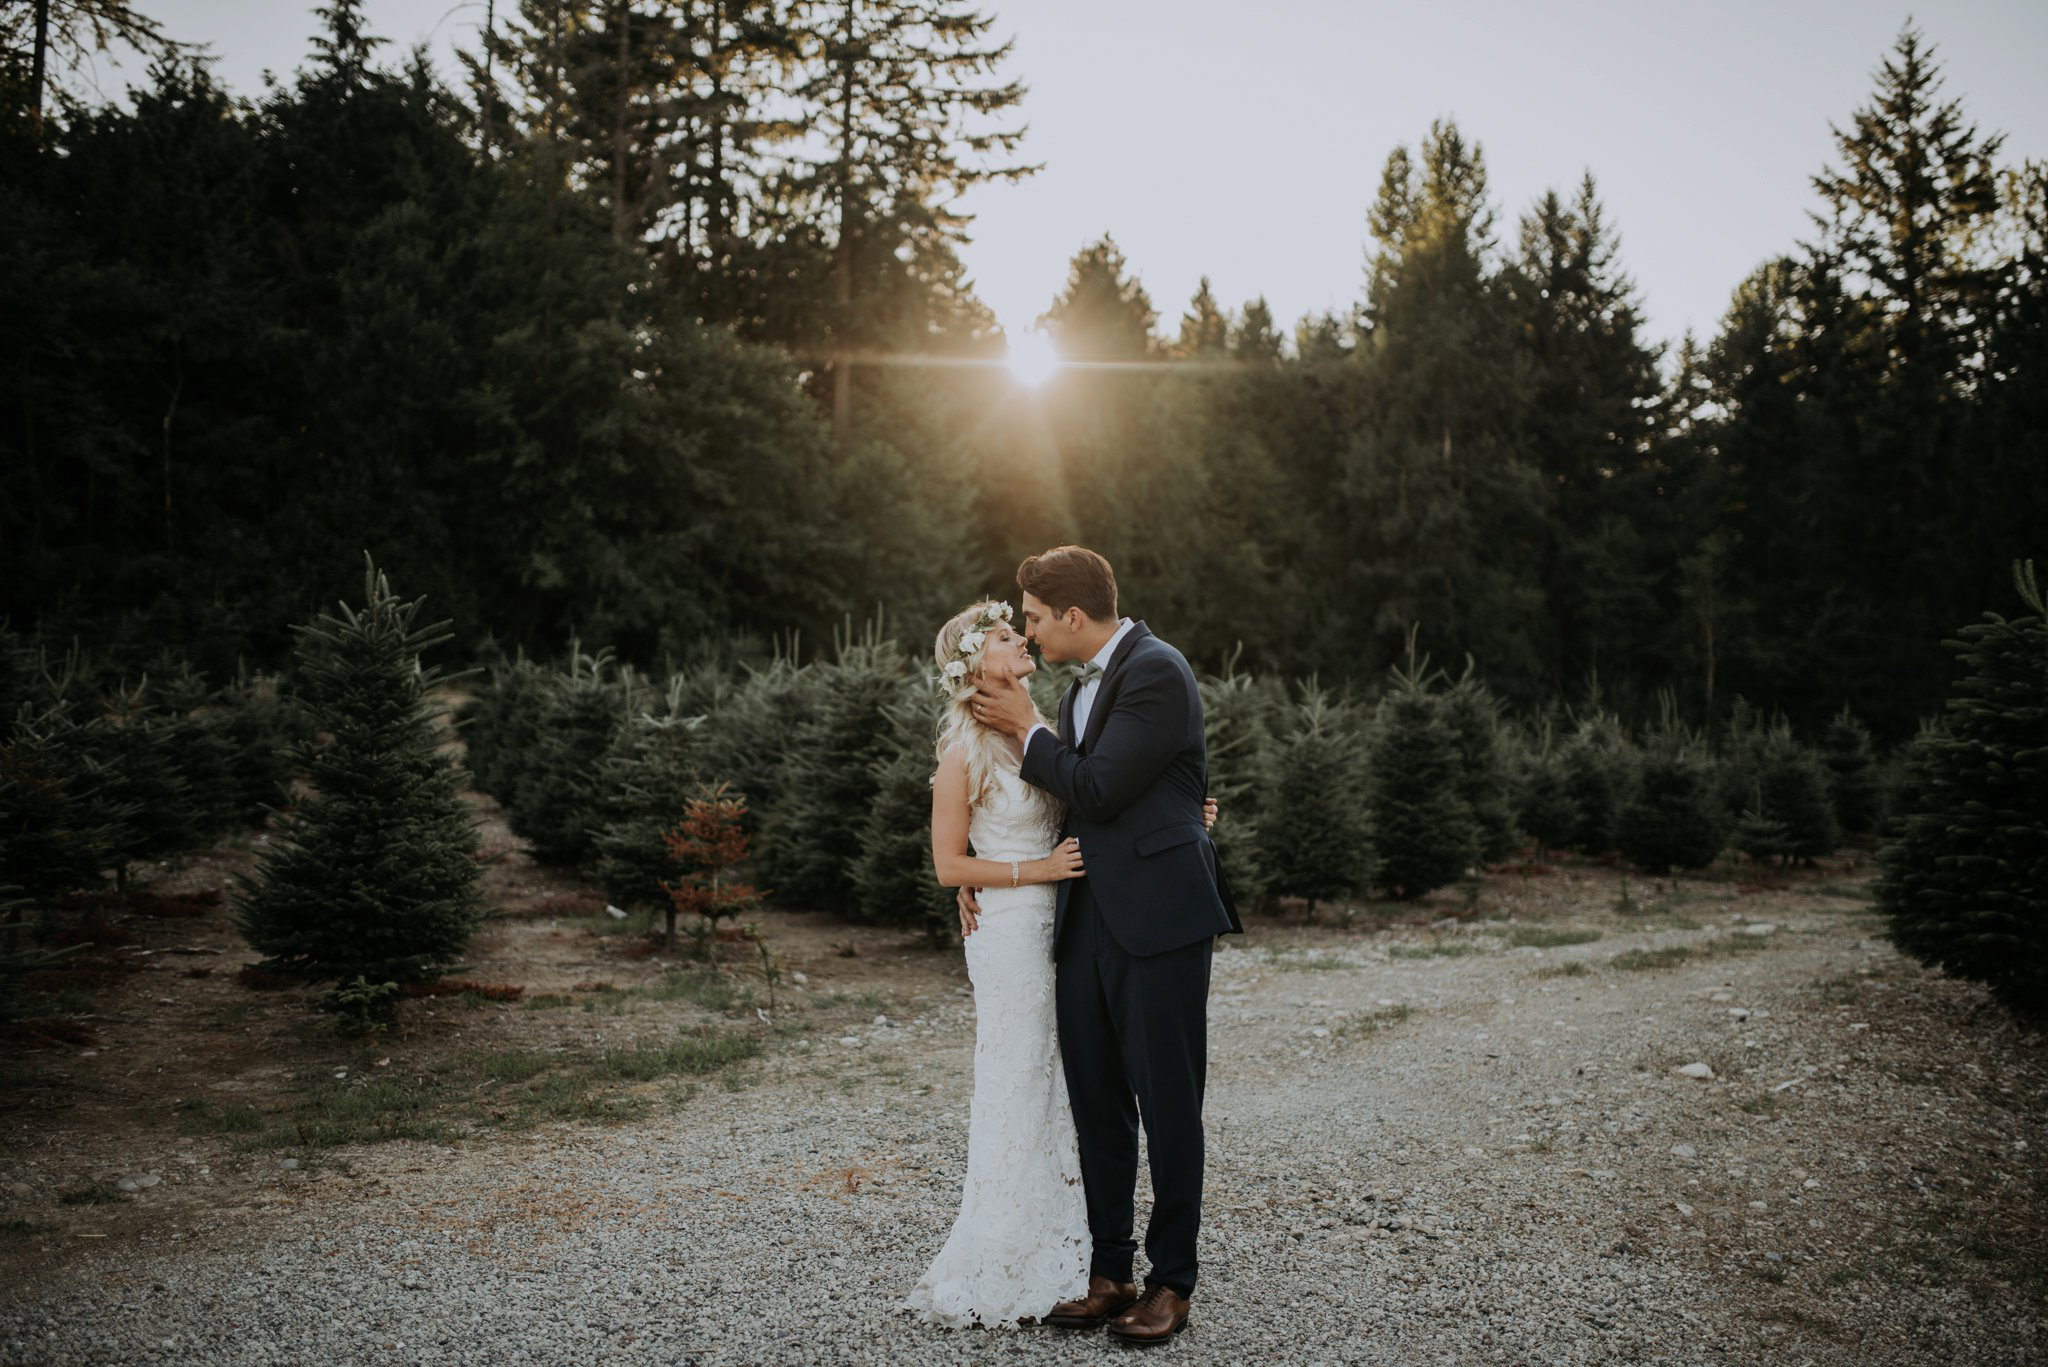 trinity-tree-farm-issaquah-washington-wedding-seattle-lifestyle-photographer-caitlyn-nikula-photography-93.jpg